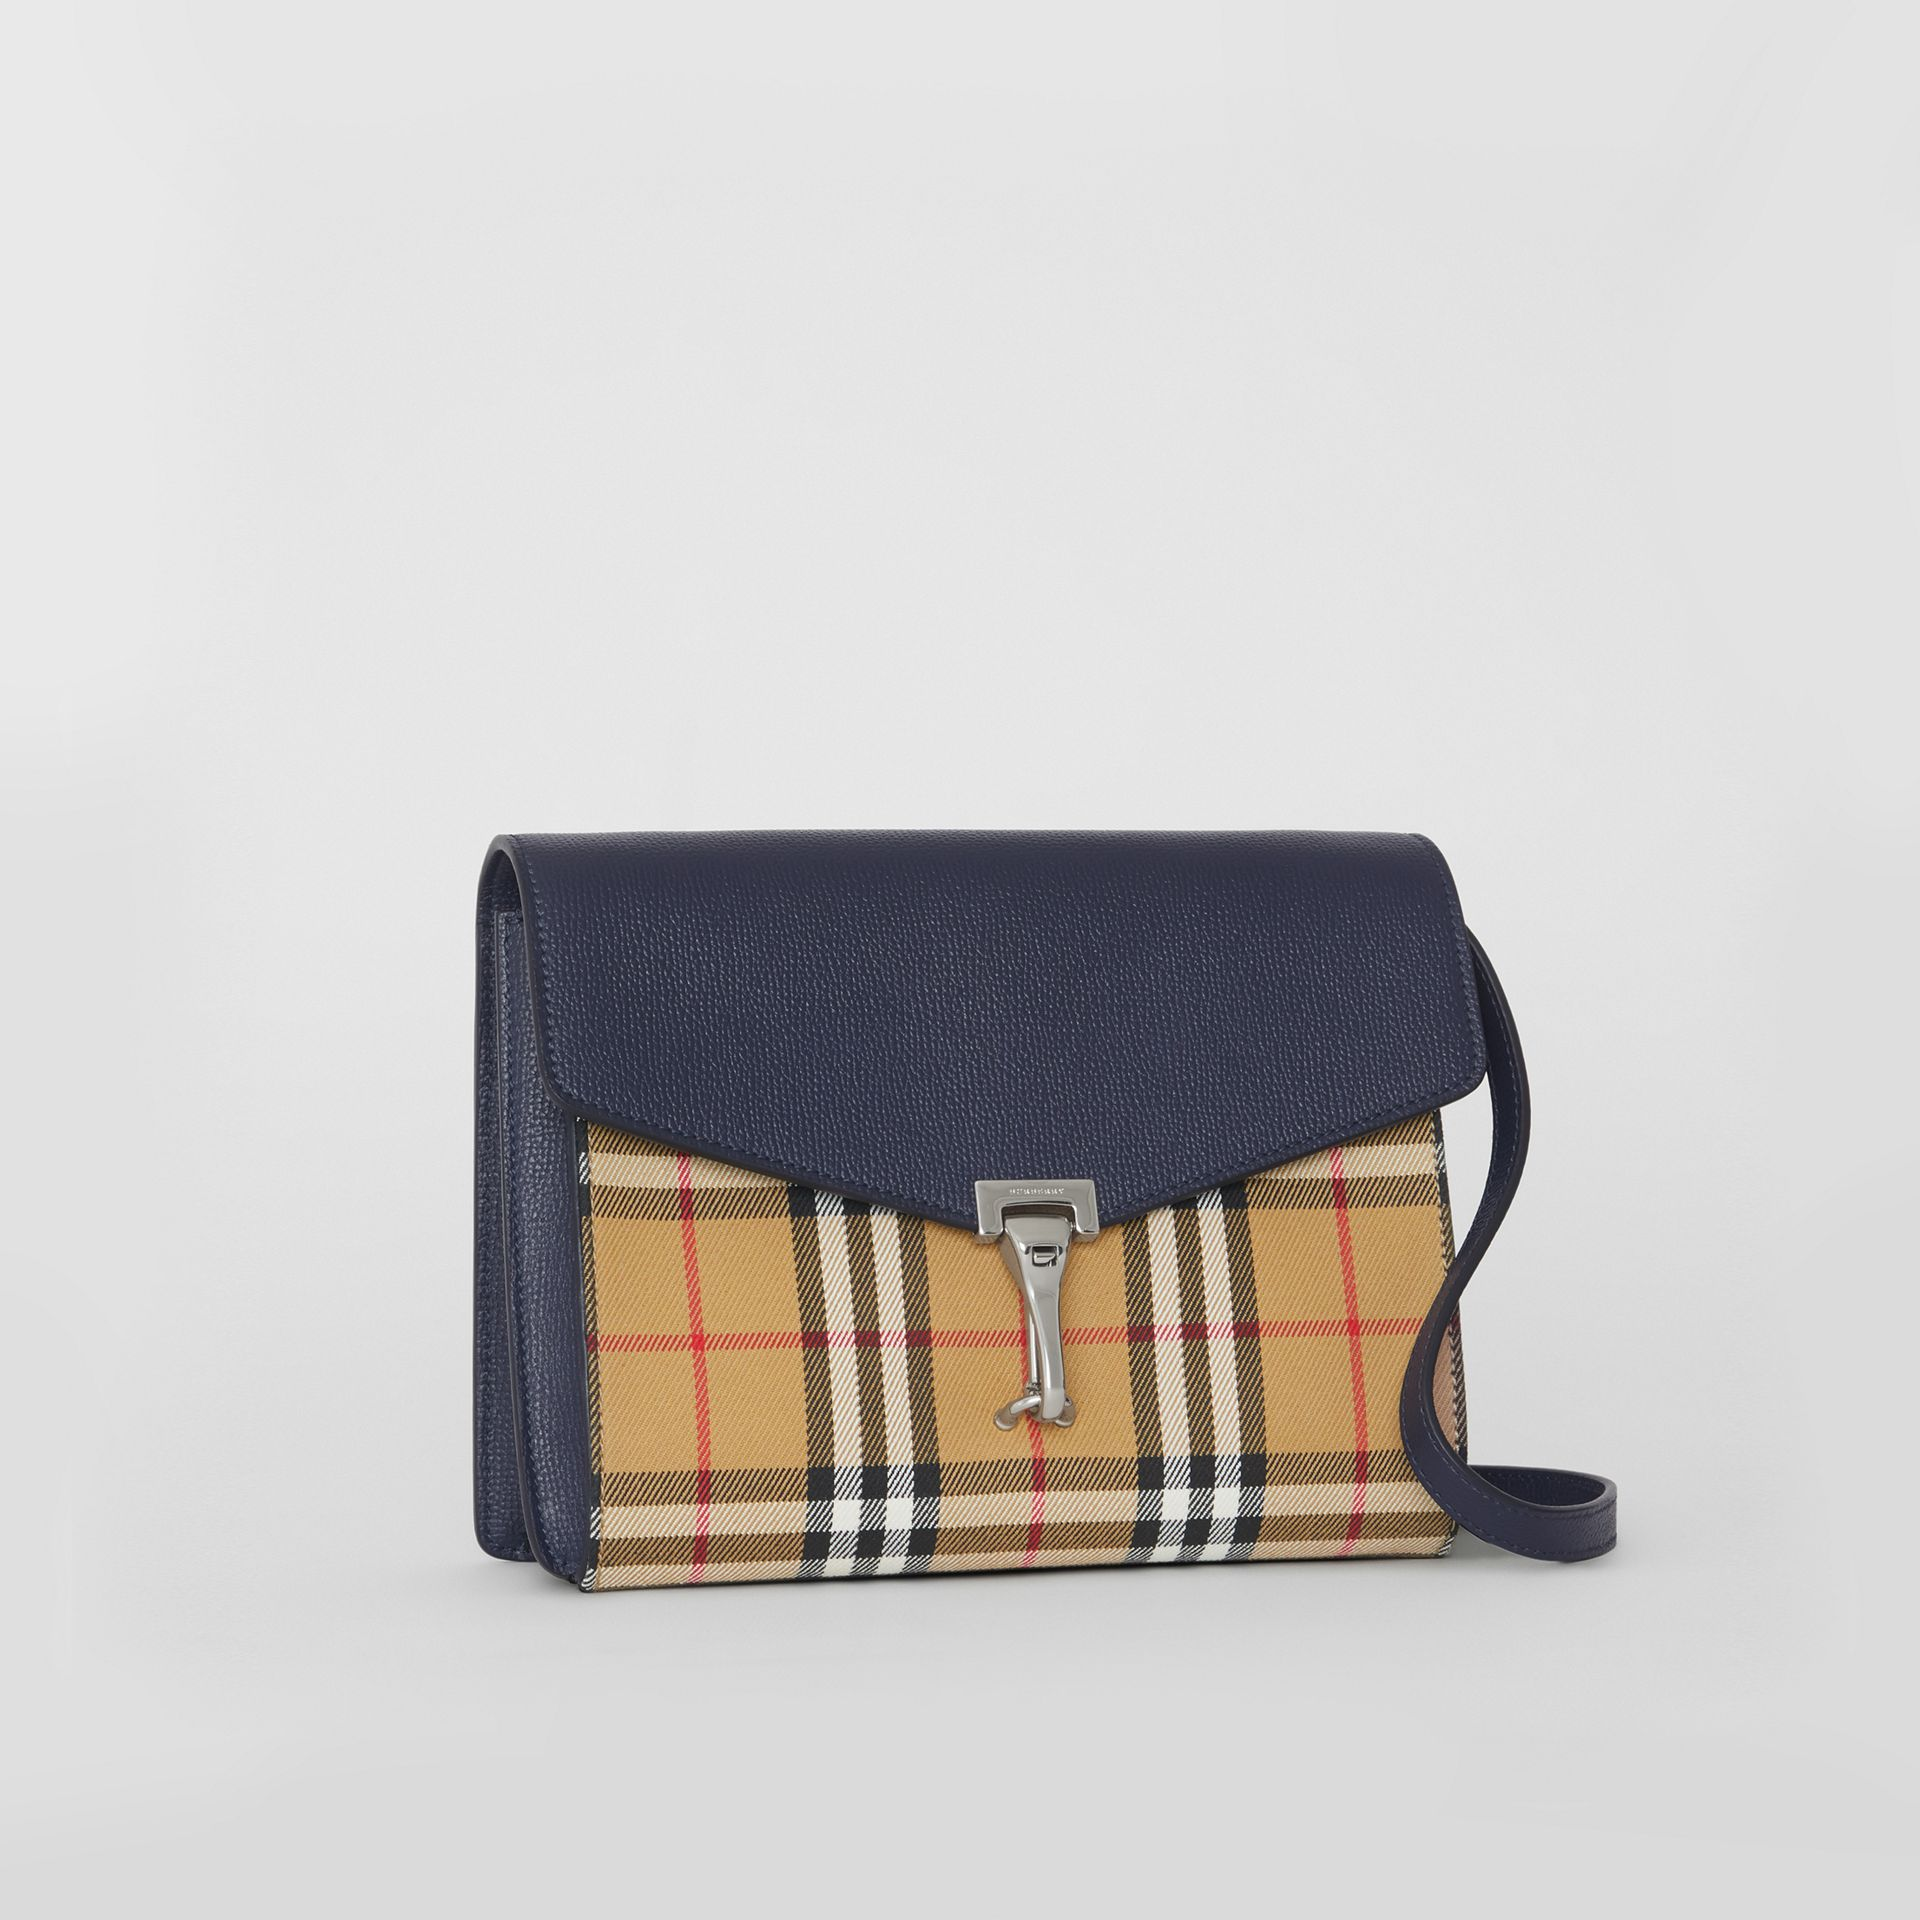 Small Vintage Check and Leather Crossbody Bag in Regency Blue - Women | Burberry - gallery image 4